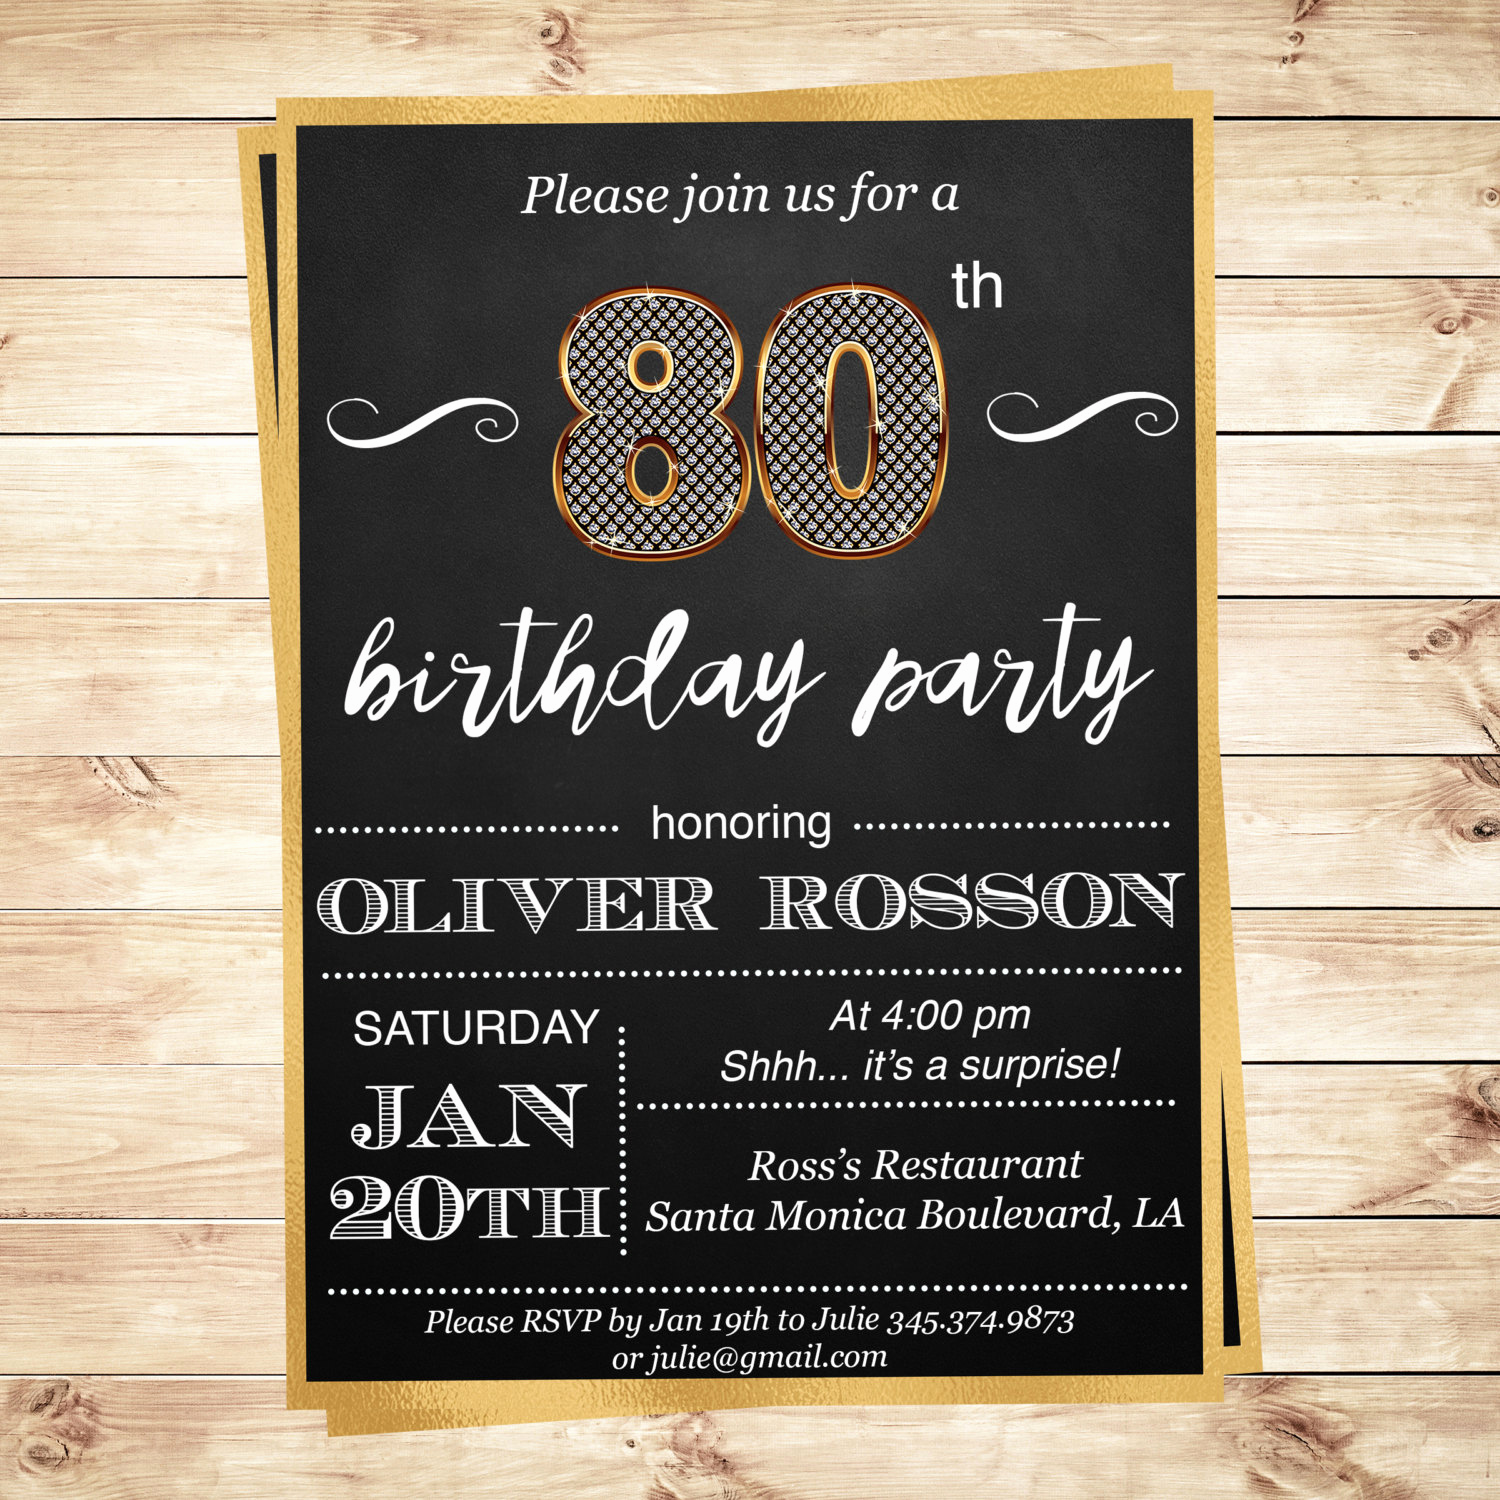 80th Birthday Party Invitations Beautiful 80th Birthday Surprise Party Invitation by Diypartyinvitation